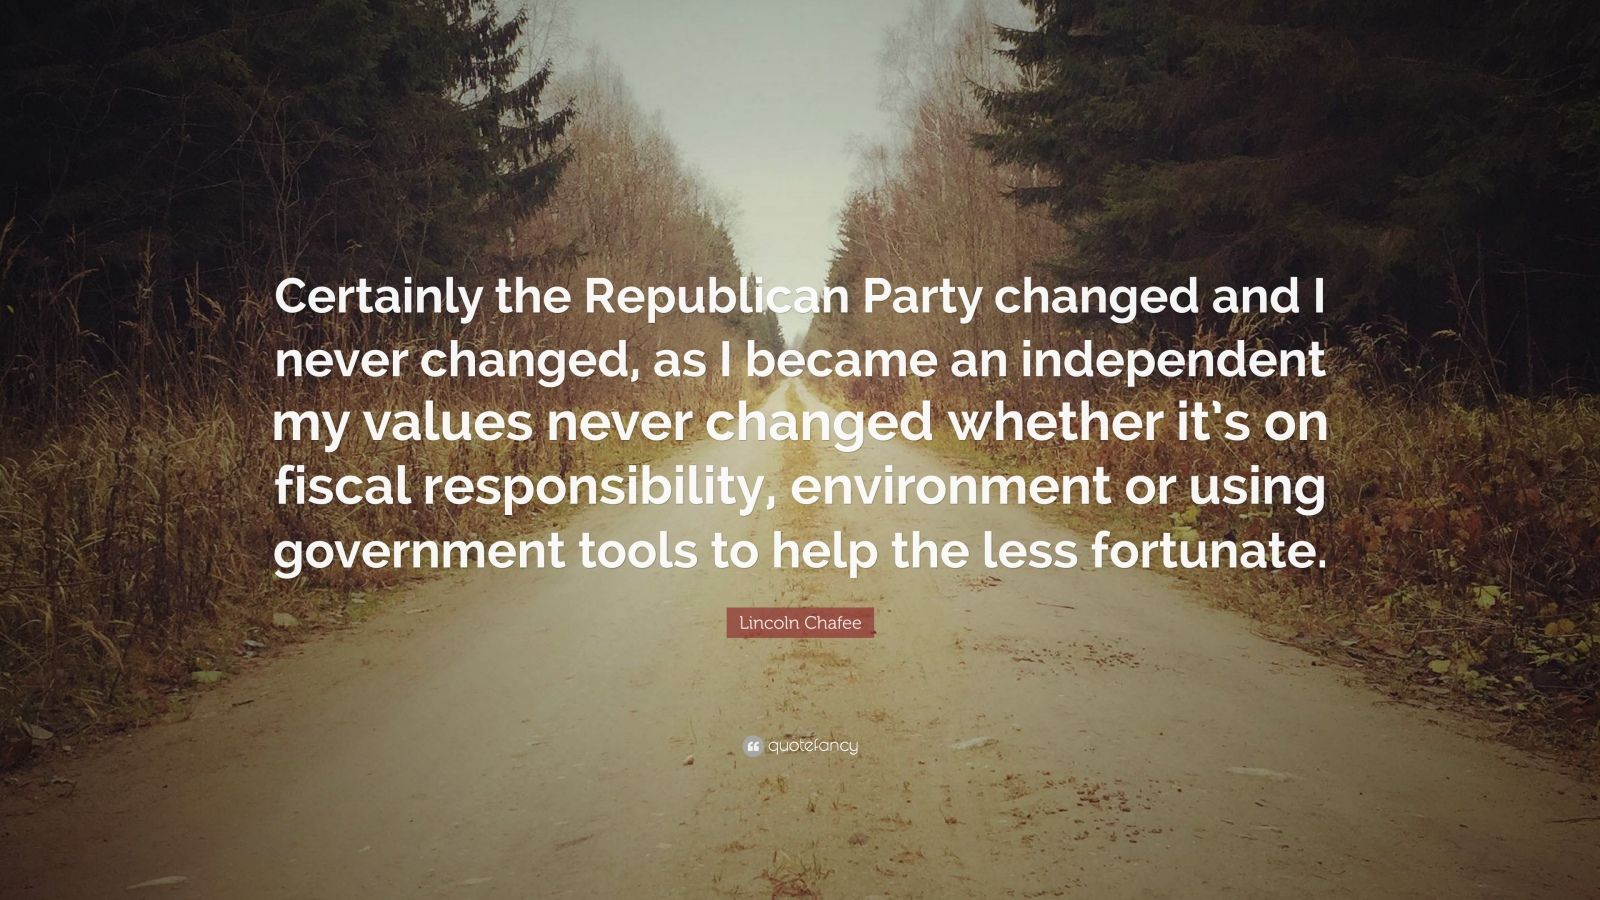 "Lincoln Chafee Quote: ""Certainly the Republican Party changed and I never changed, as I became an independent my values never changed whether it's on fiscal responsibility, environment or using government tools to help the less fortunate."""